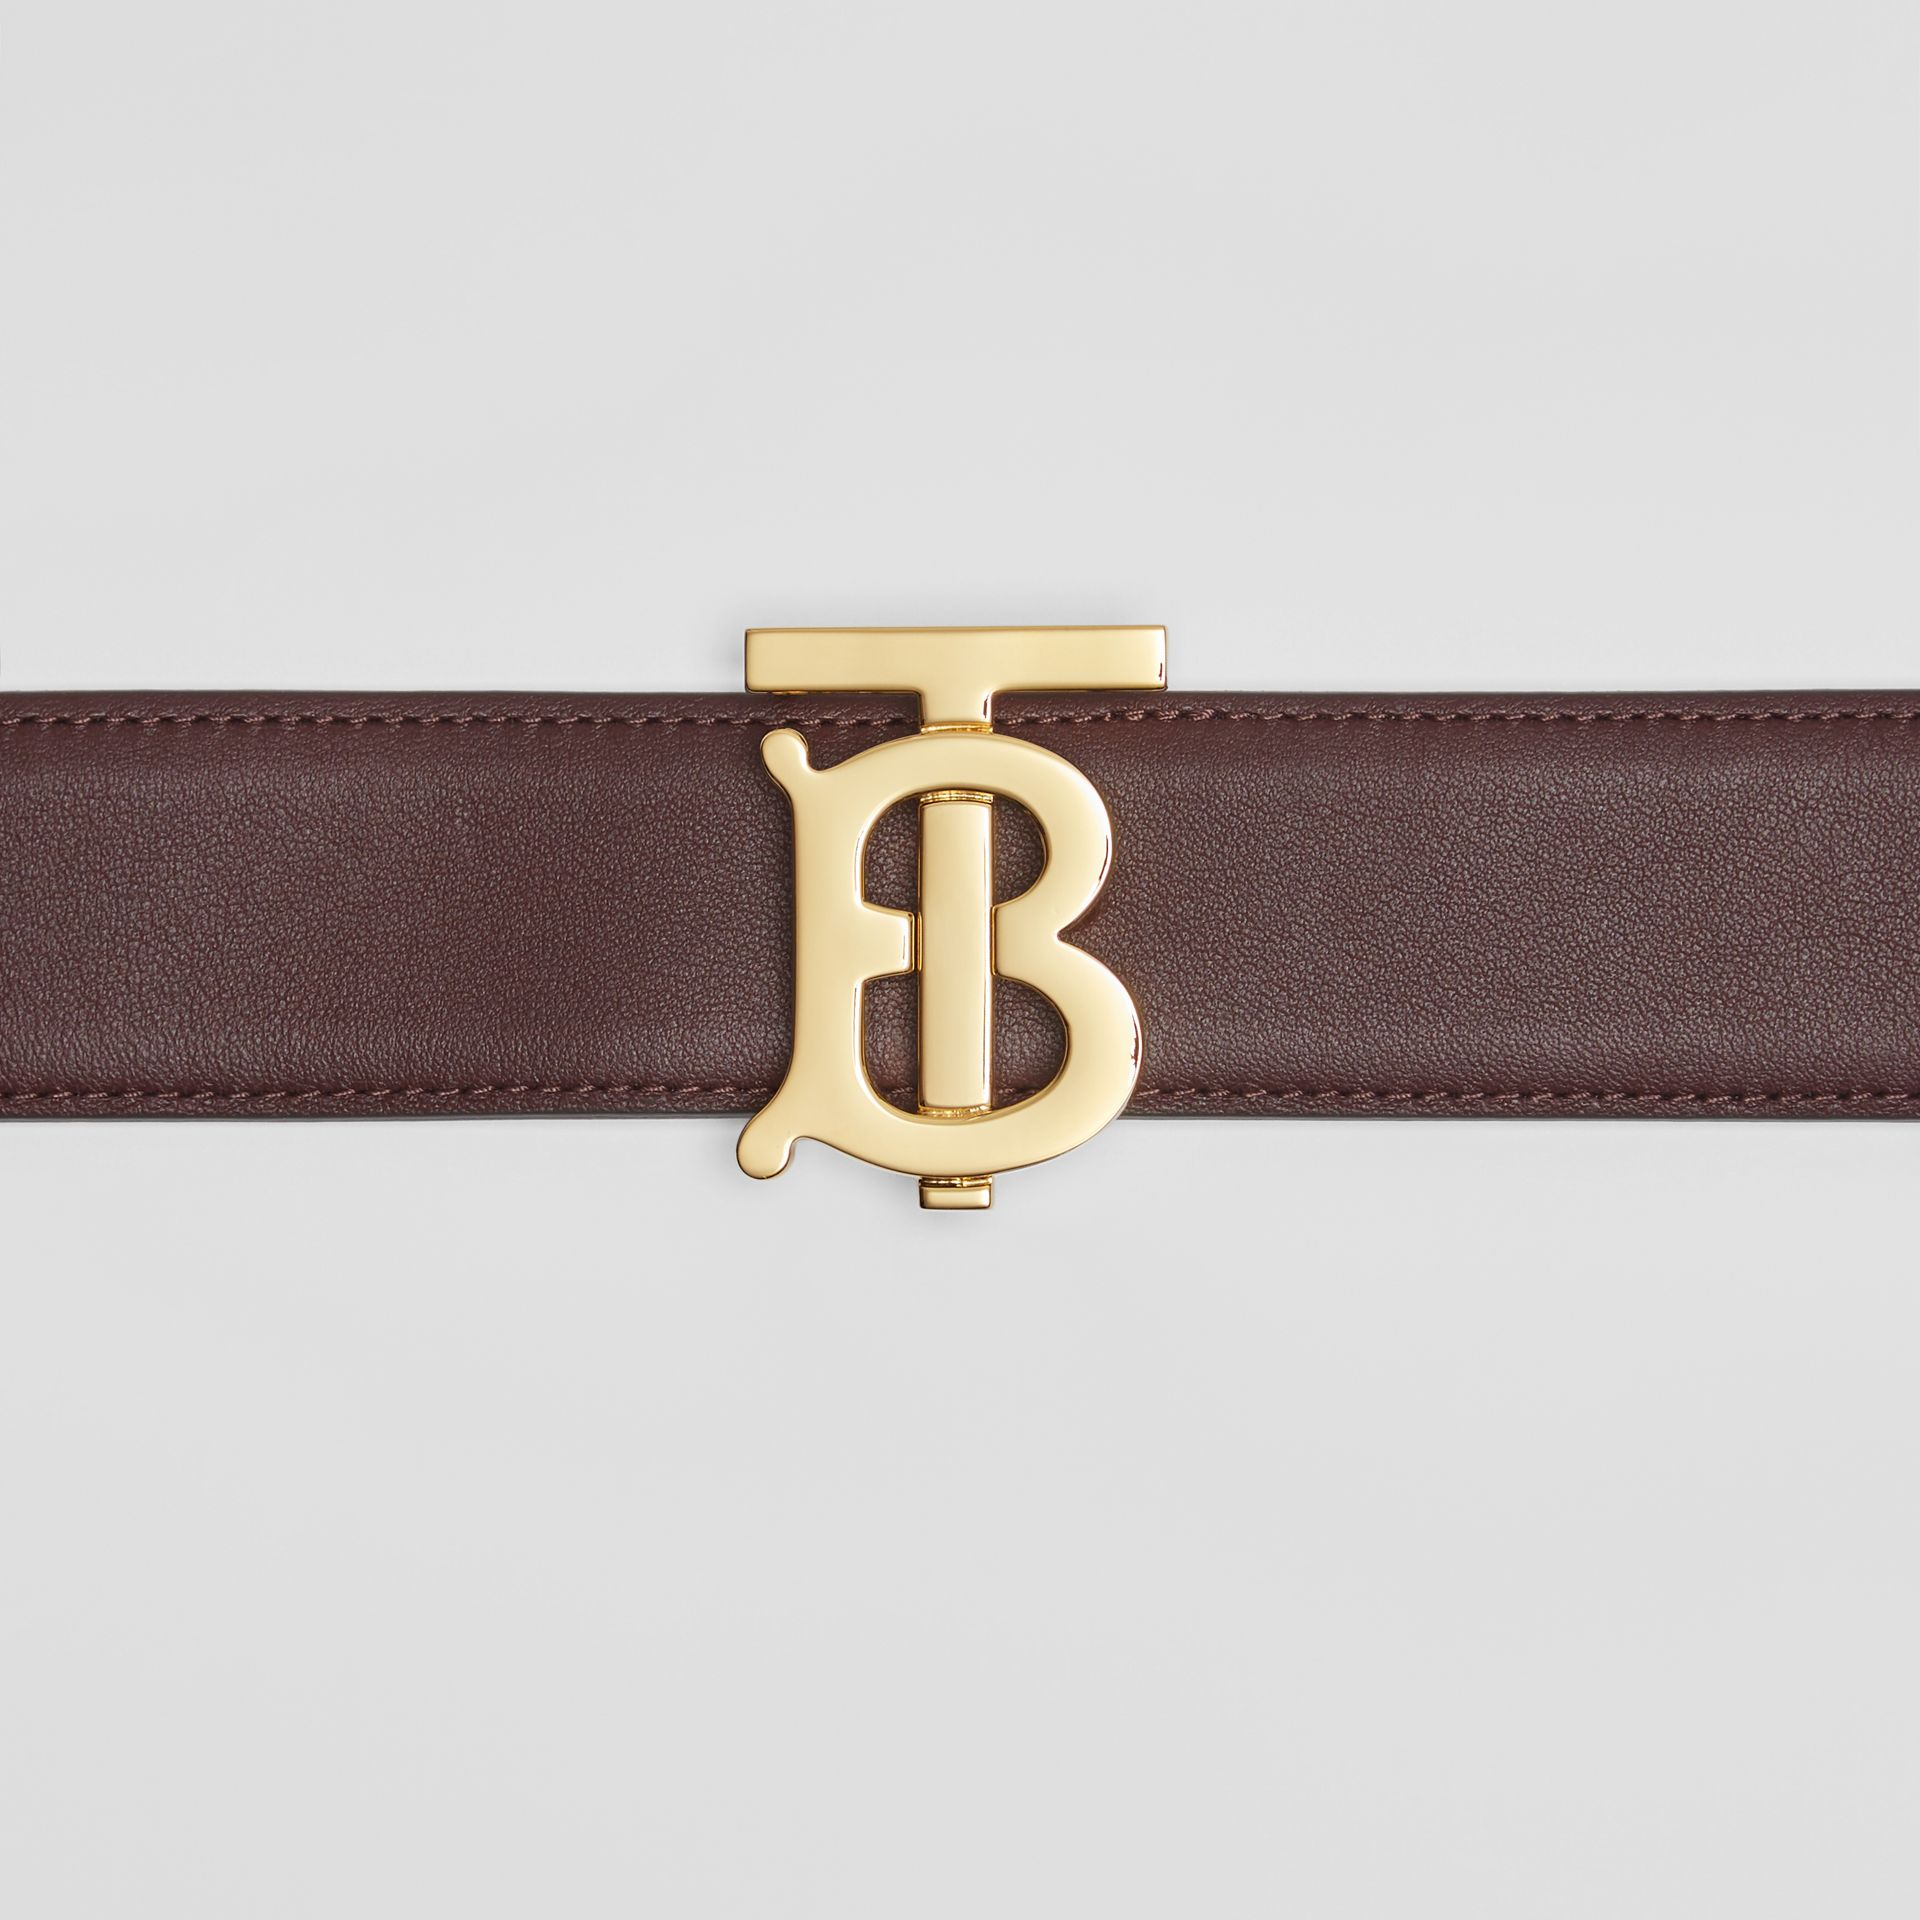 Reversible Monogram Motif Leather Belt in Oxblood/rose Beige - Women | Burberry United Kingdom - gallery image 1